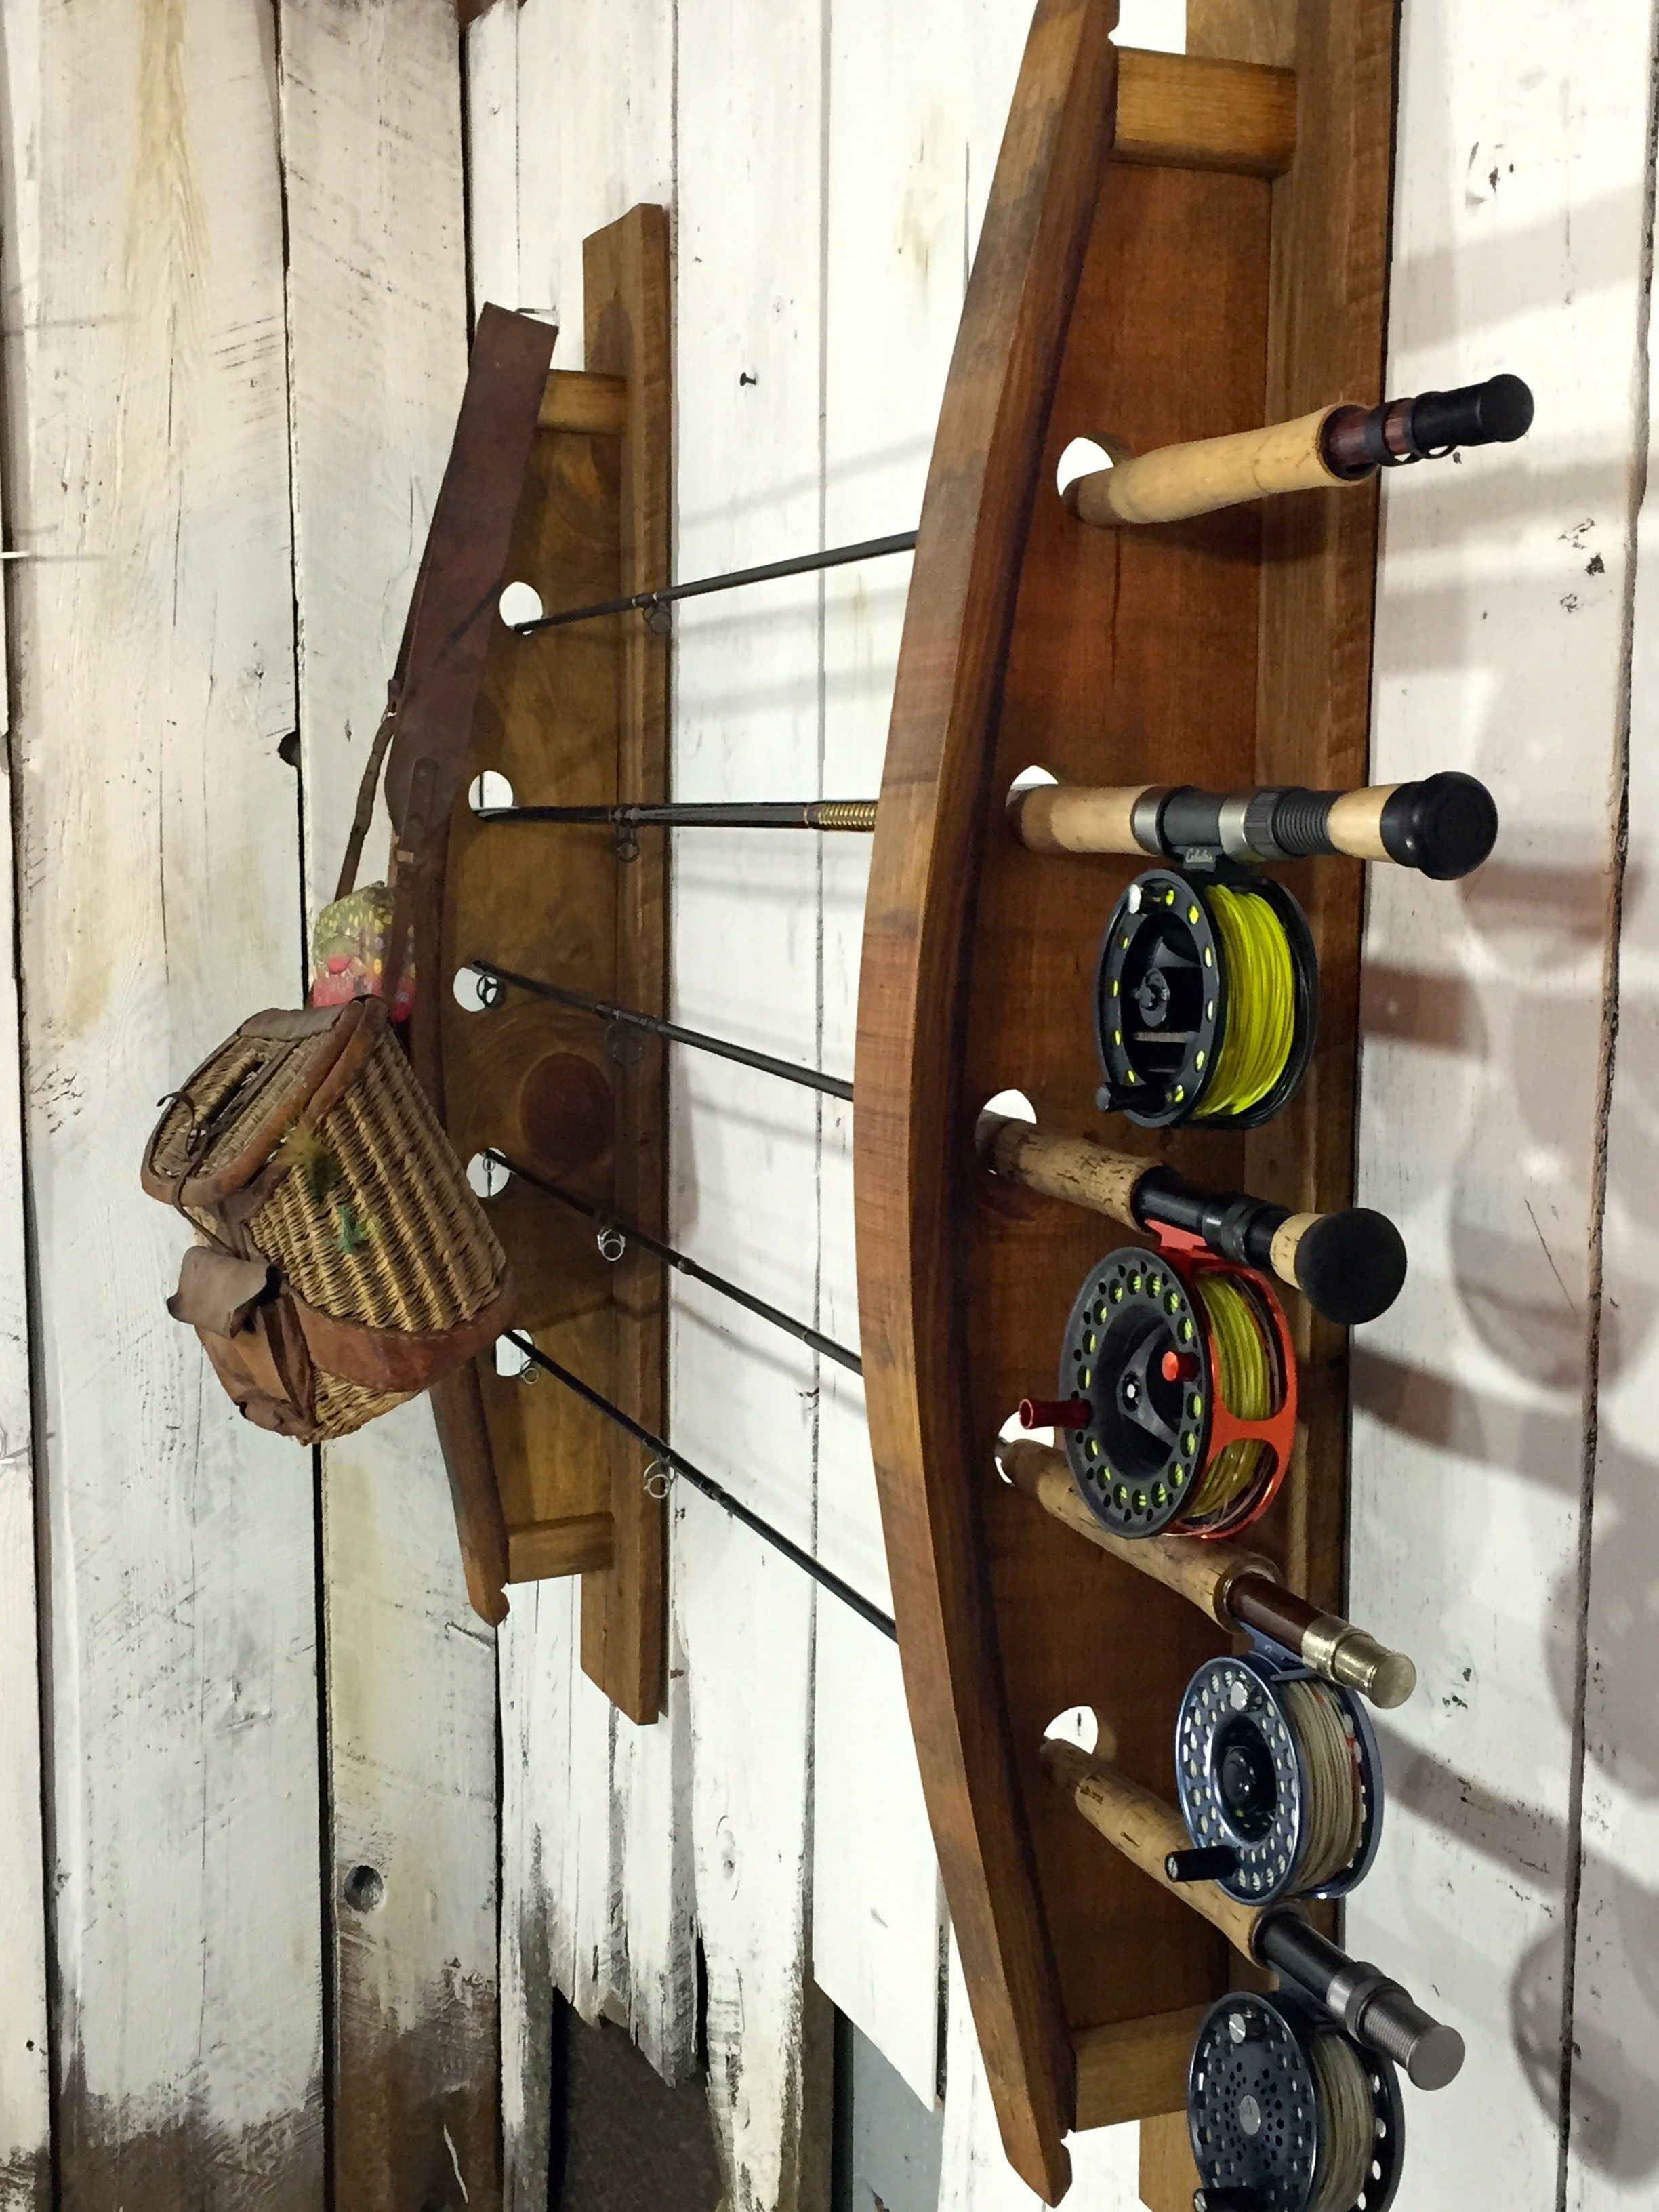 Custom Made Great Lakes Fly Fishing Rack Napa Valley Wine Barrel Staves Reclaimed Wood